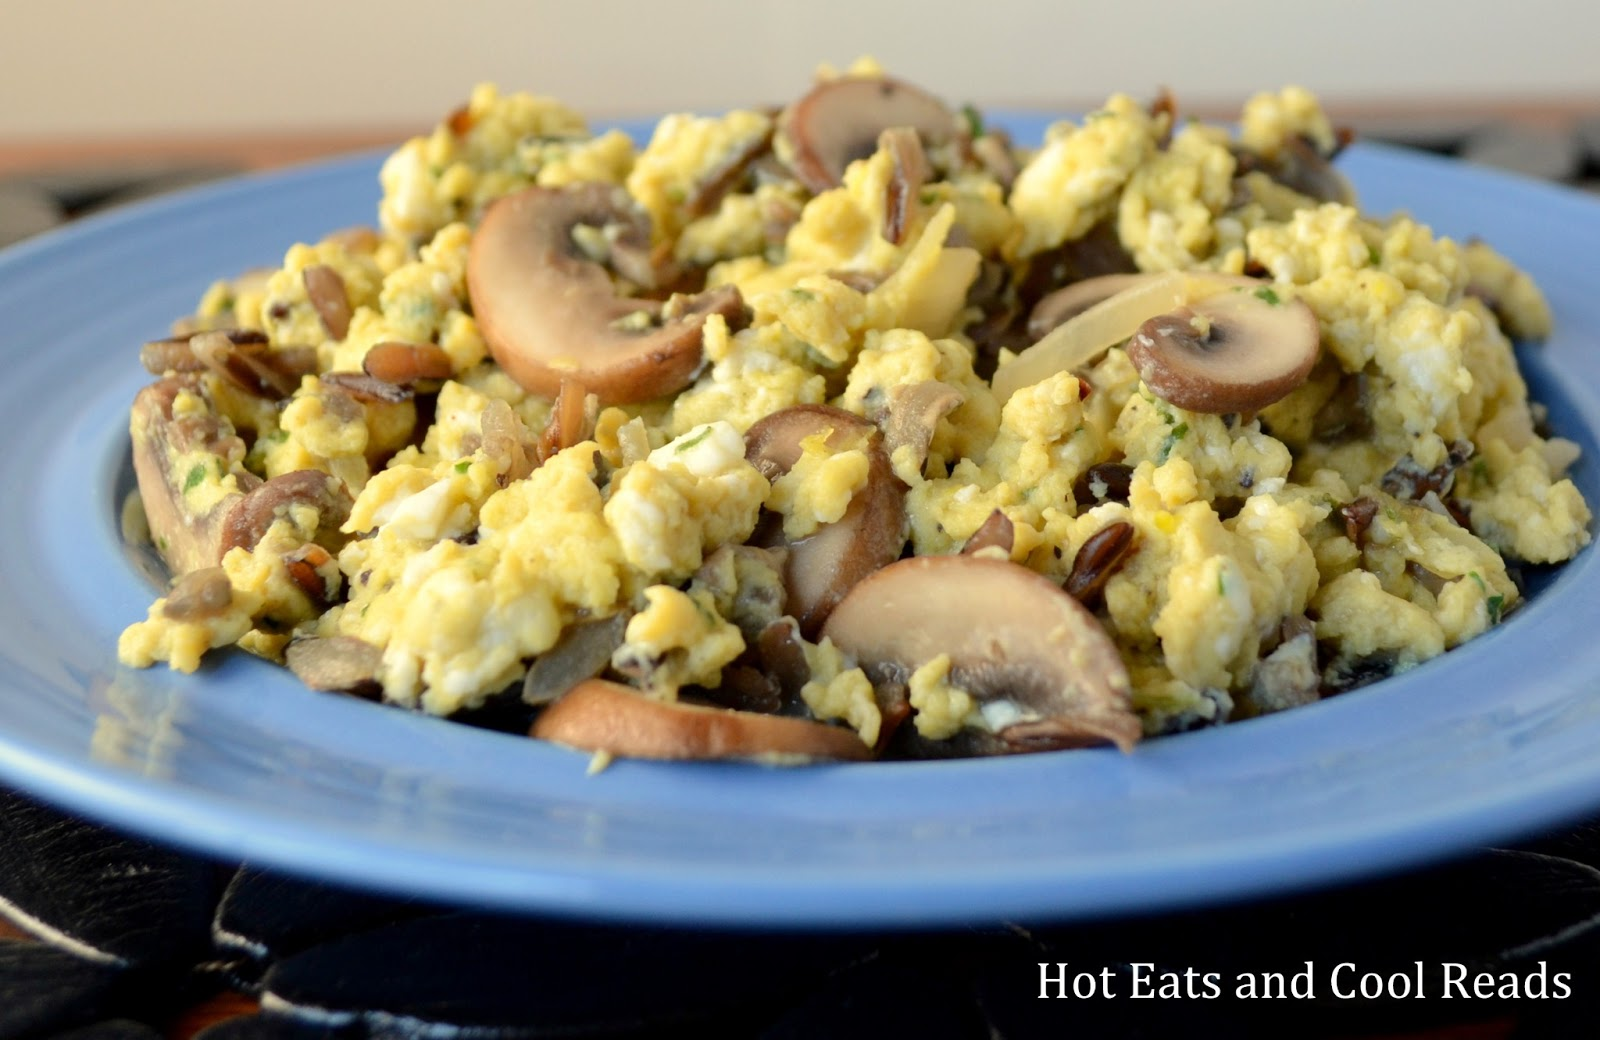 Hot Eats and Cool Reads: 40 Delicious and Creative Wild Rice Recipes